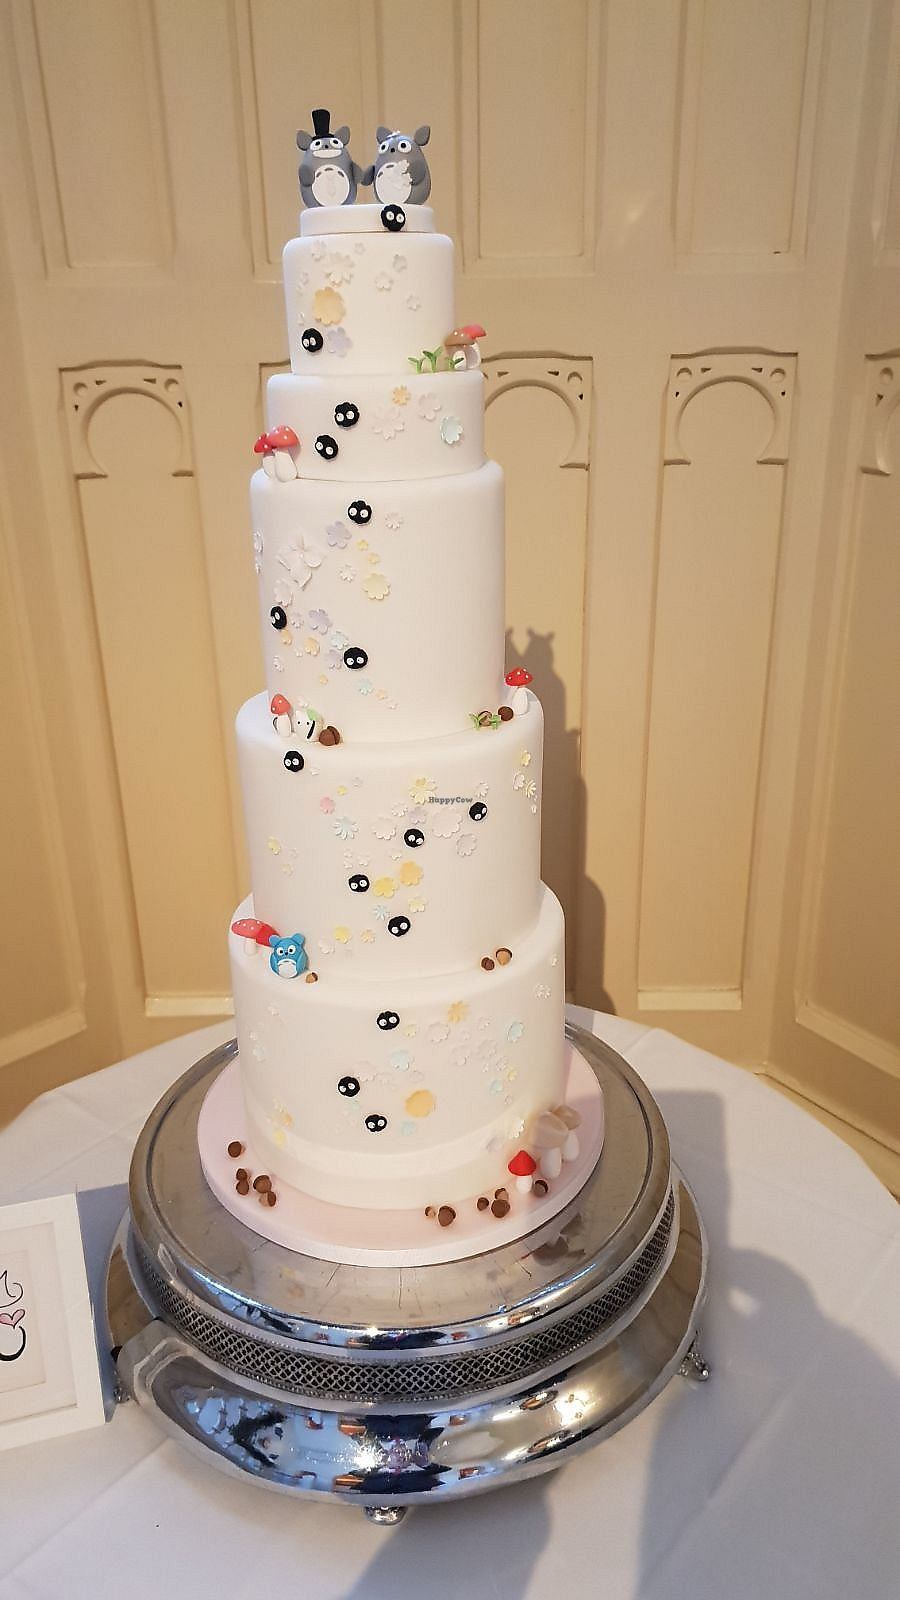 "Photo of Tiny Sarah's Cakes  by <a href=""/members/profile/kasakaa"">kasakaa</a> <br/>Totoro Wedding cake <br/> April 19, 2018  - <a href='/contact/abuse/image/83763/388155'>Report</a>"